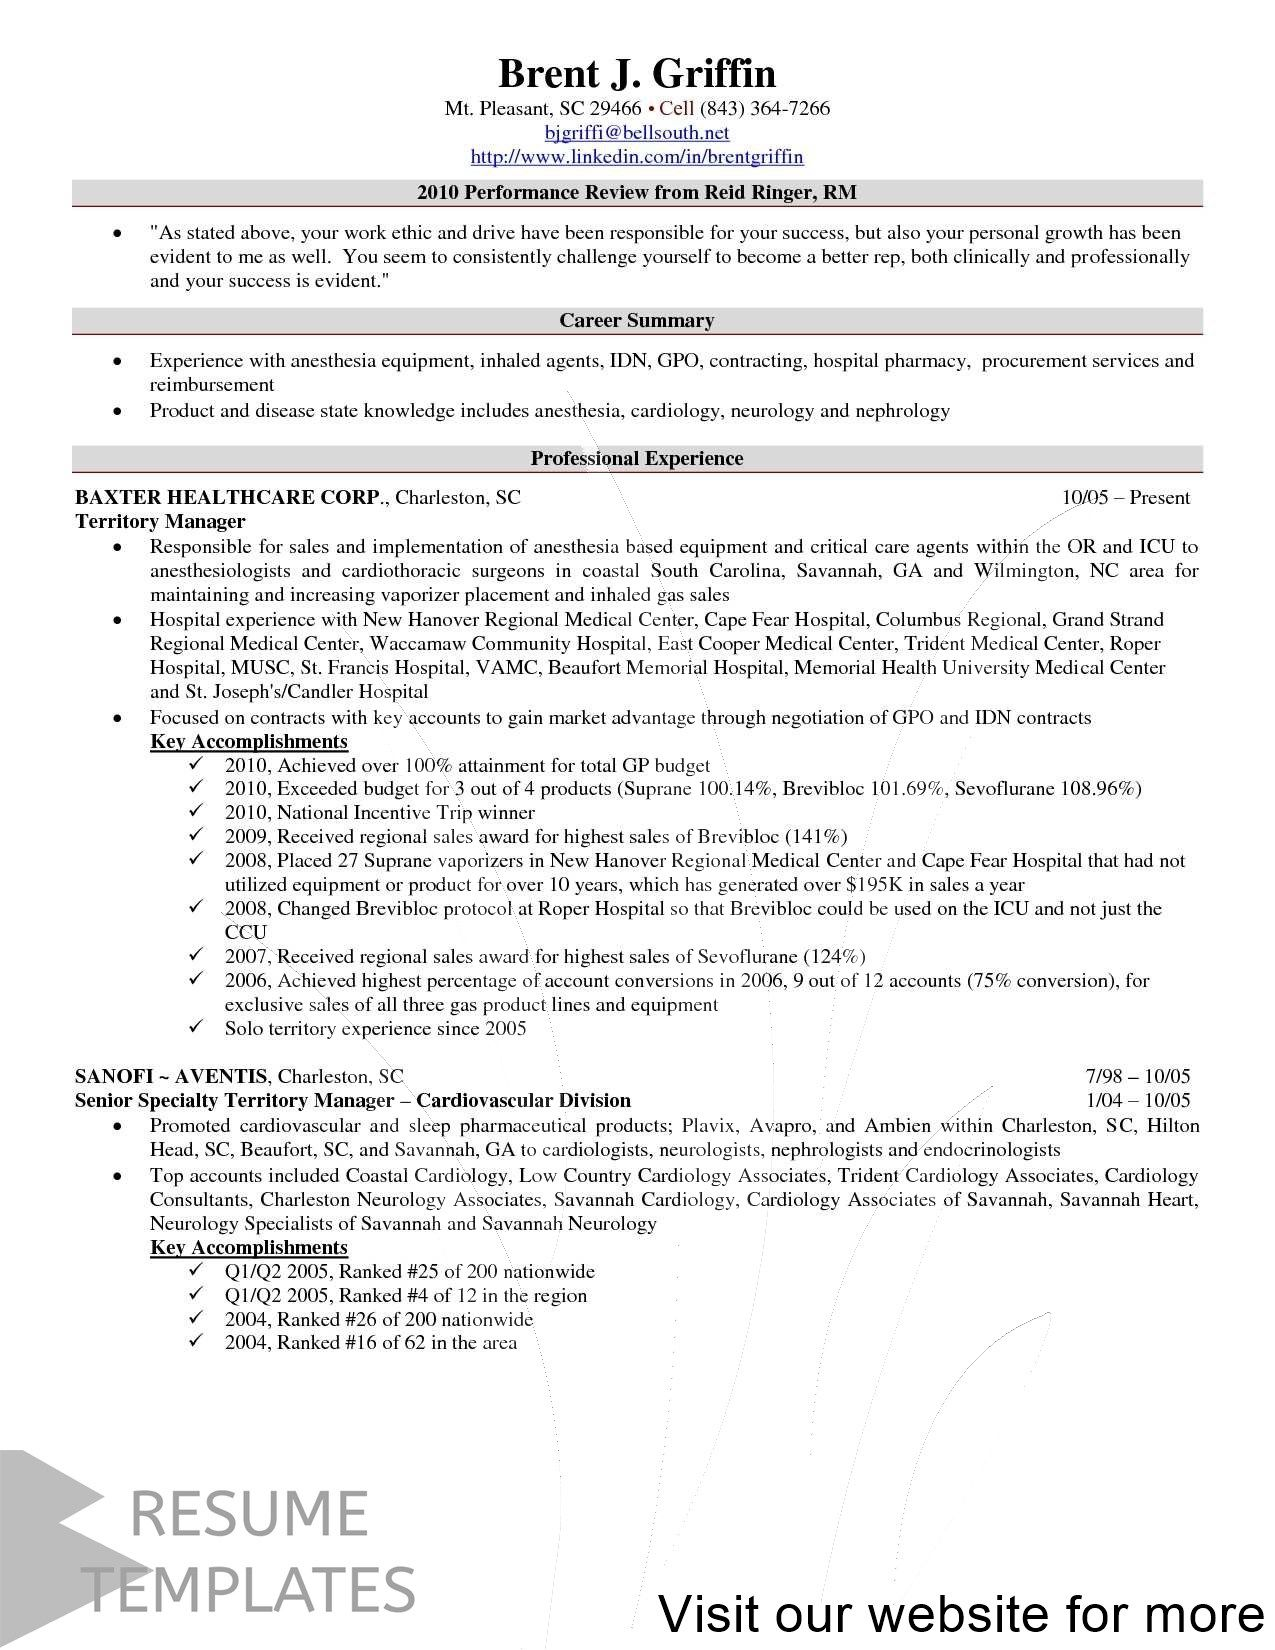 resume template free google docs in 2020 Resume template